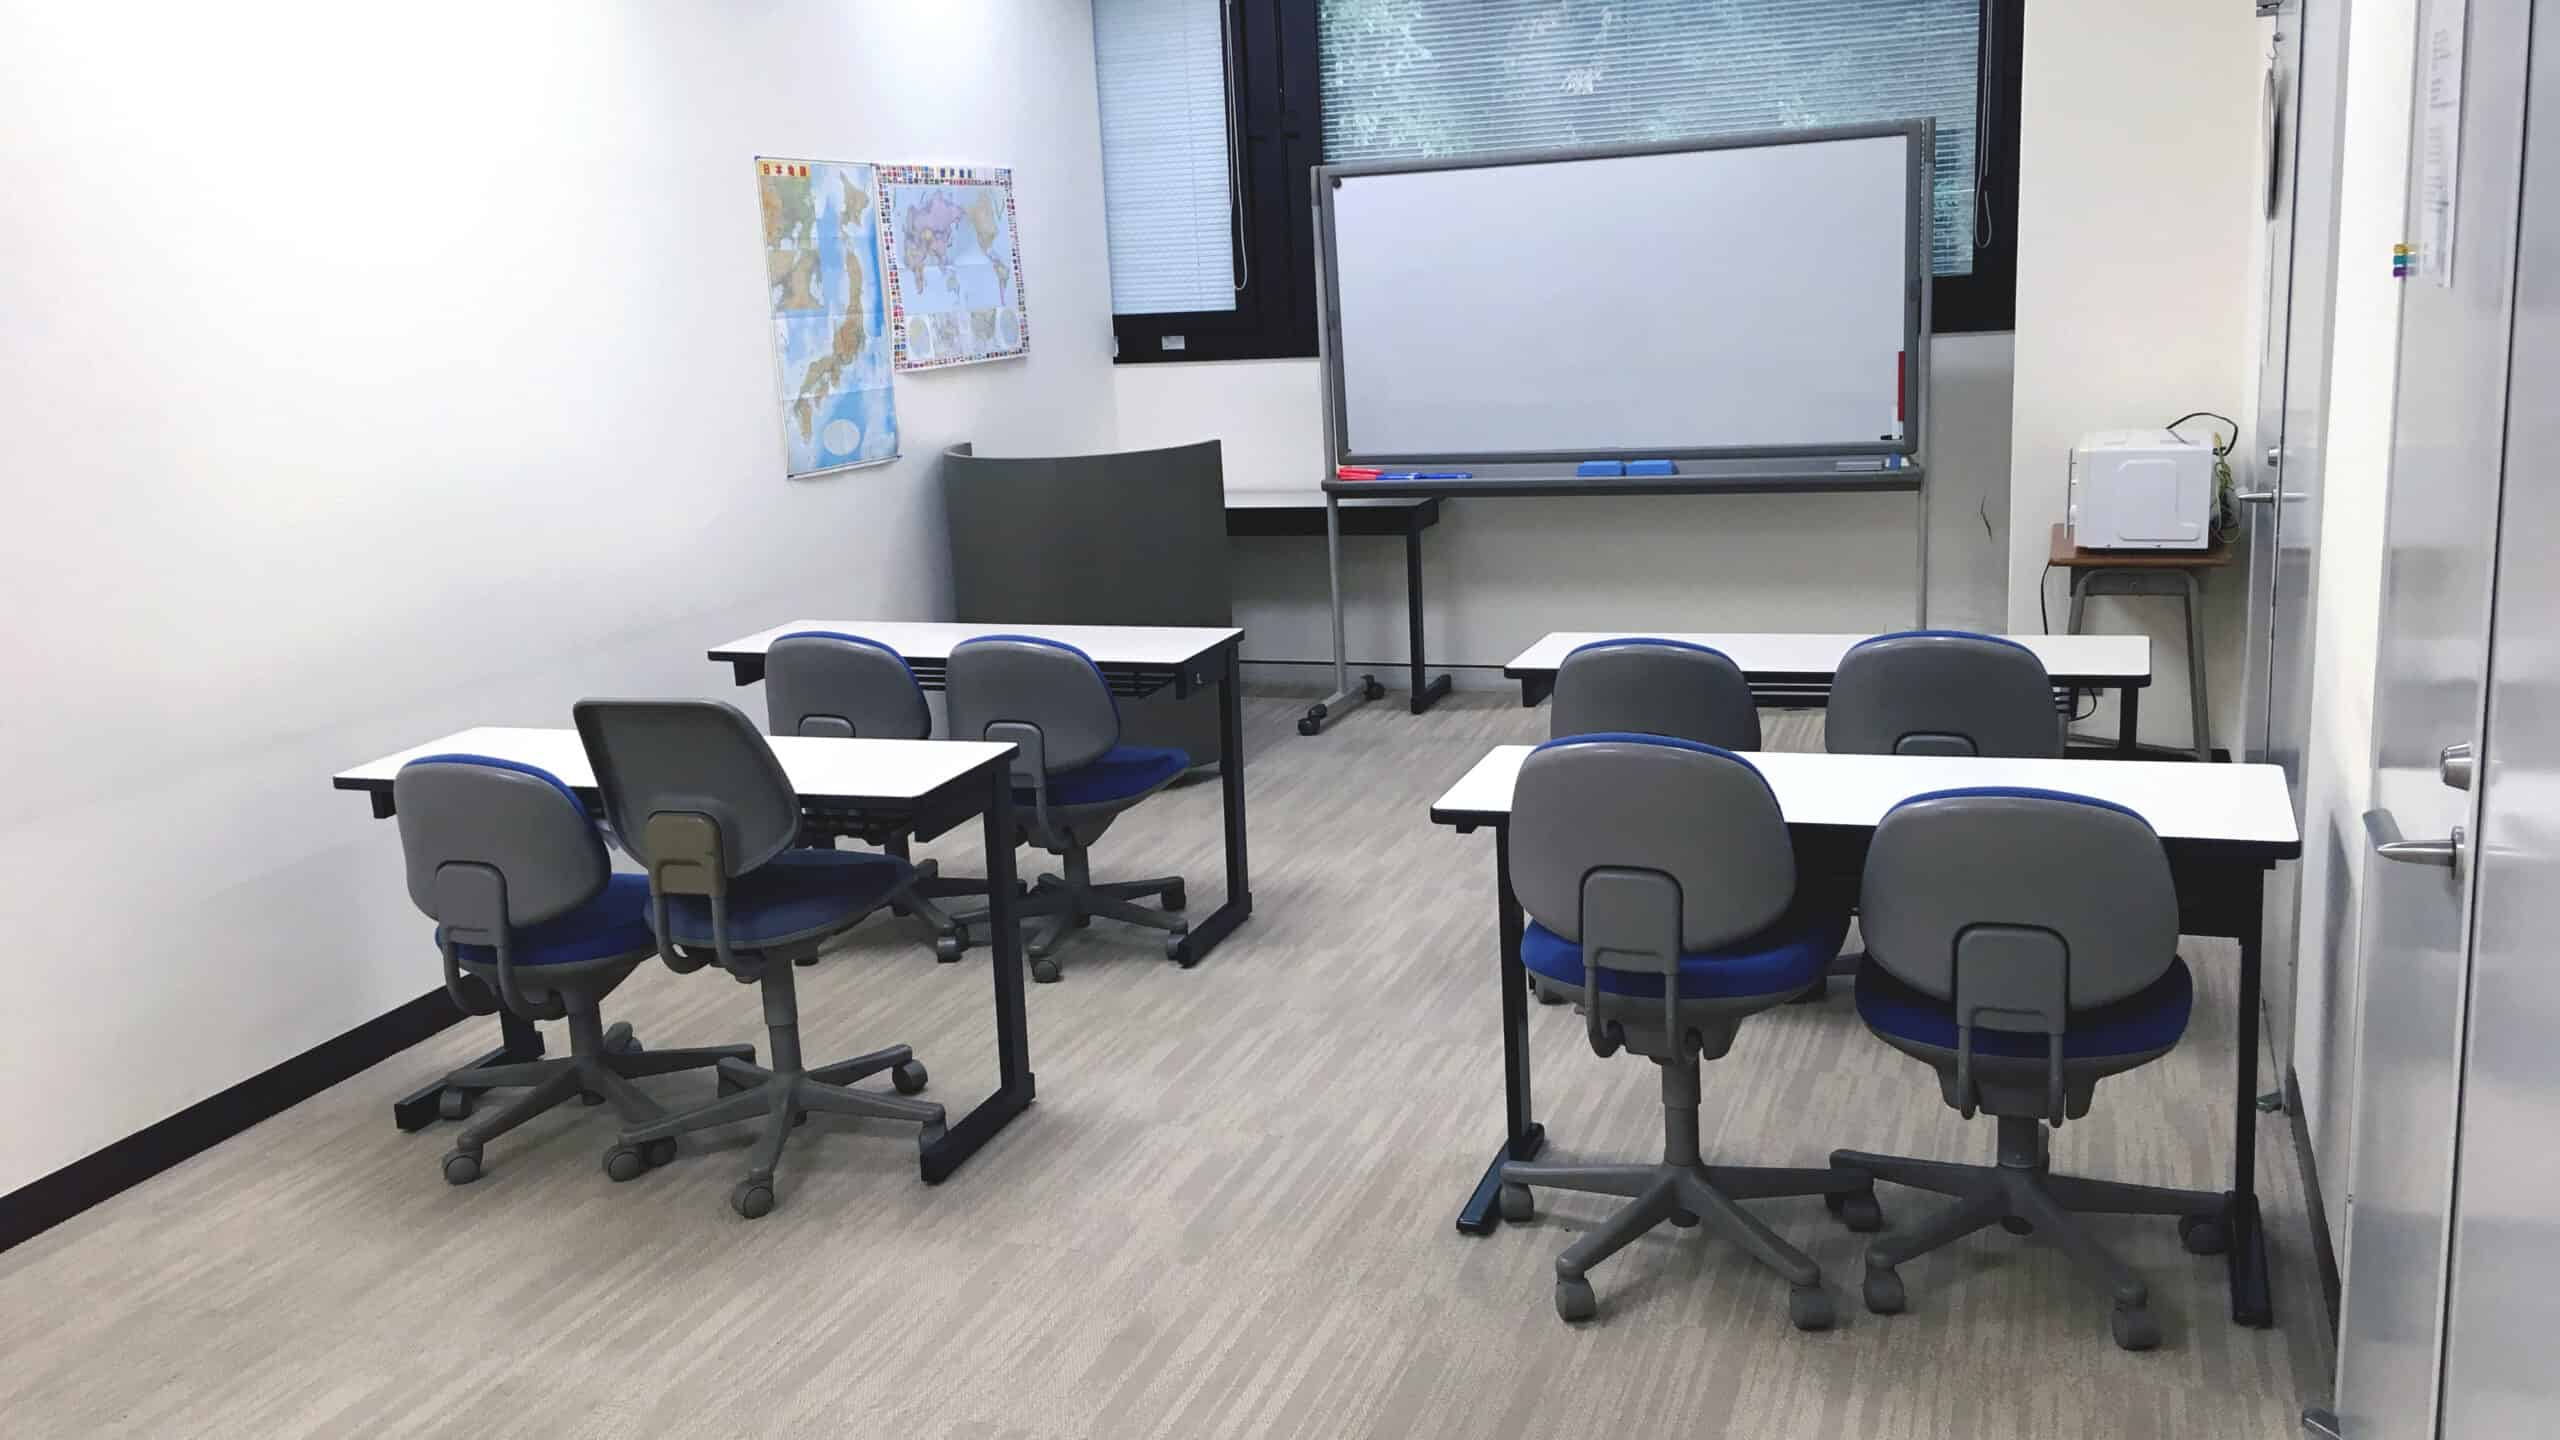 Japanese classroom with desks and a whiteboard